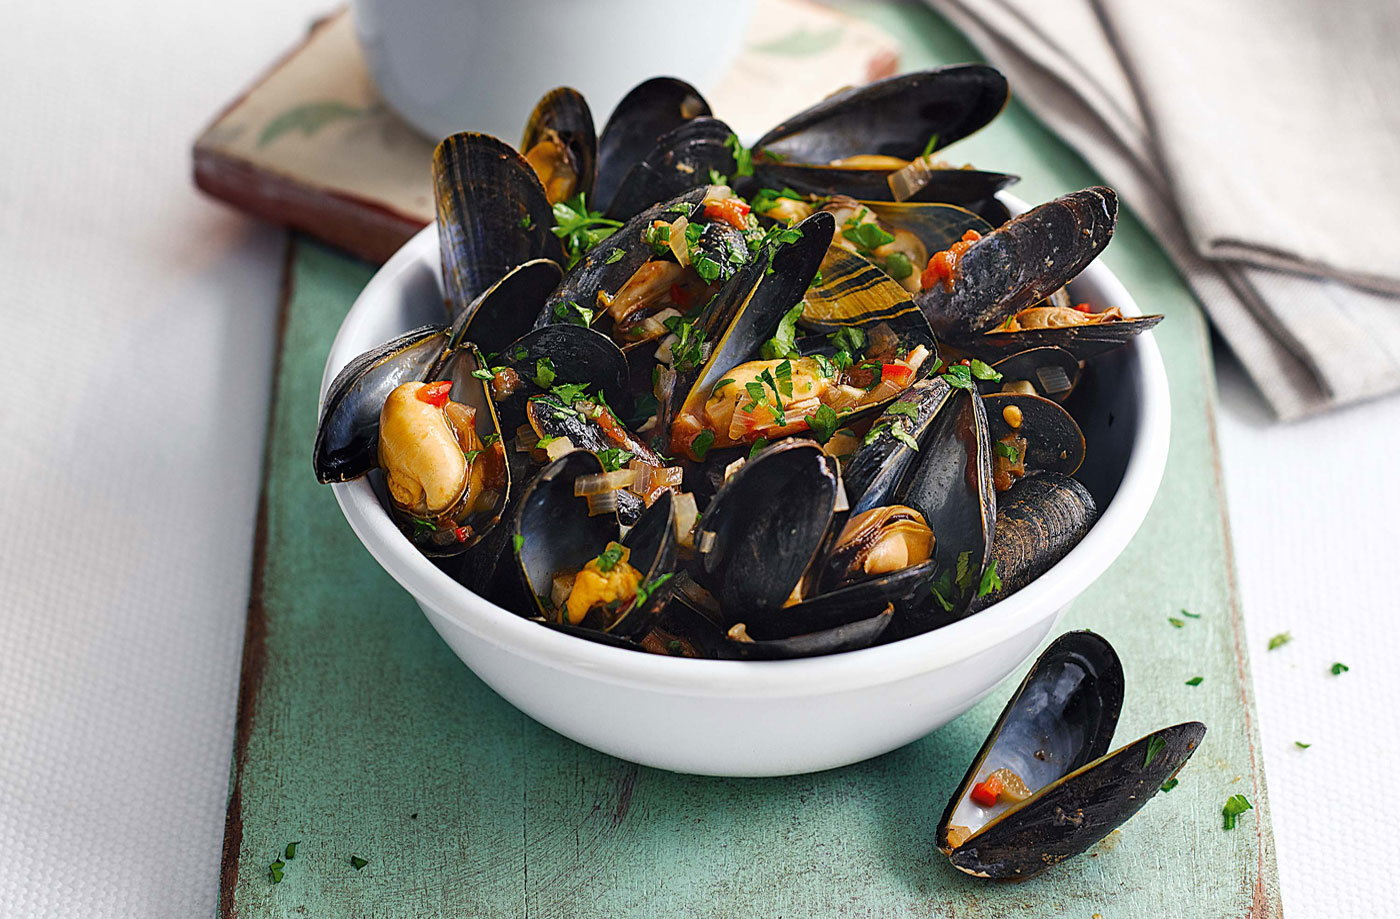 Chilli mussels and chips